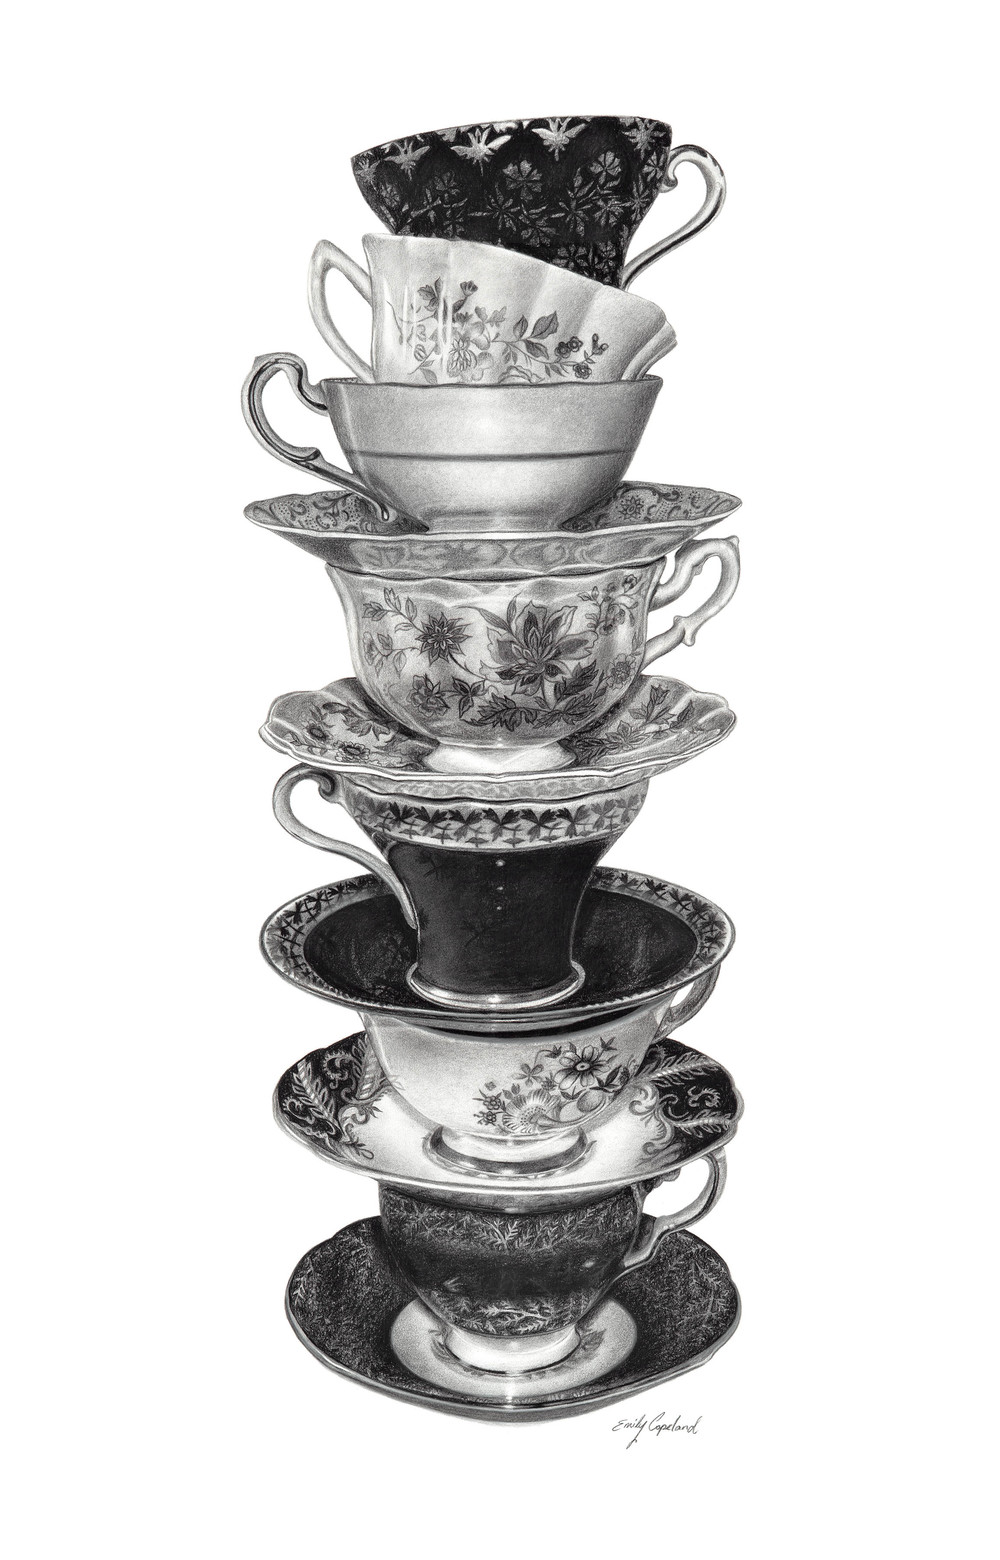 Drawn teacup stacked #11